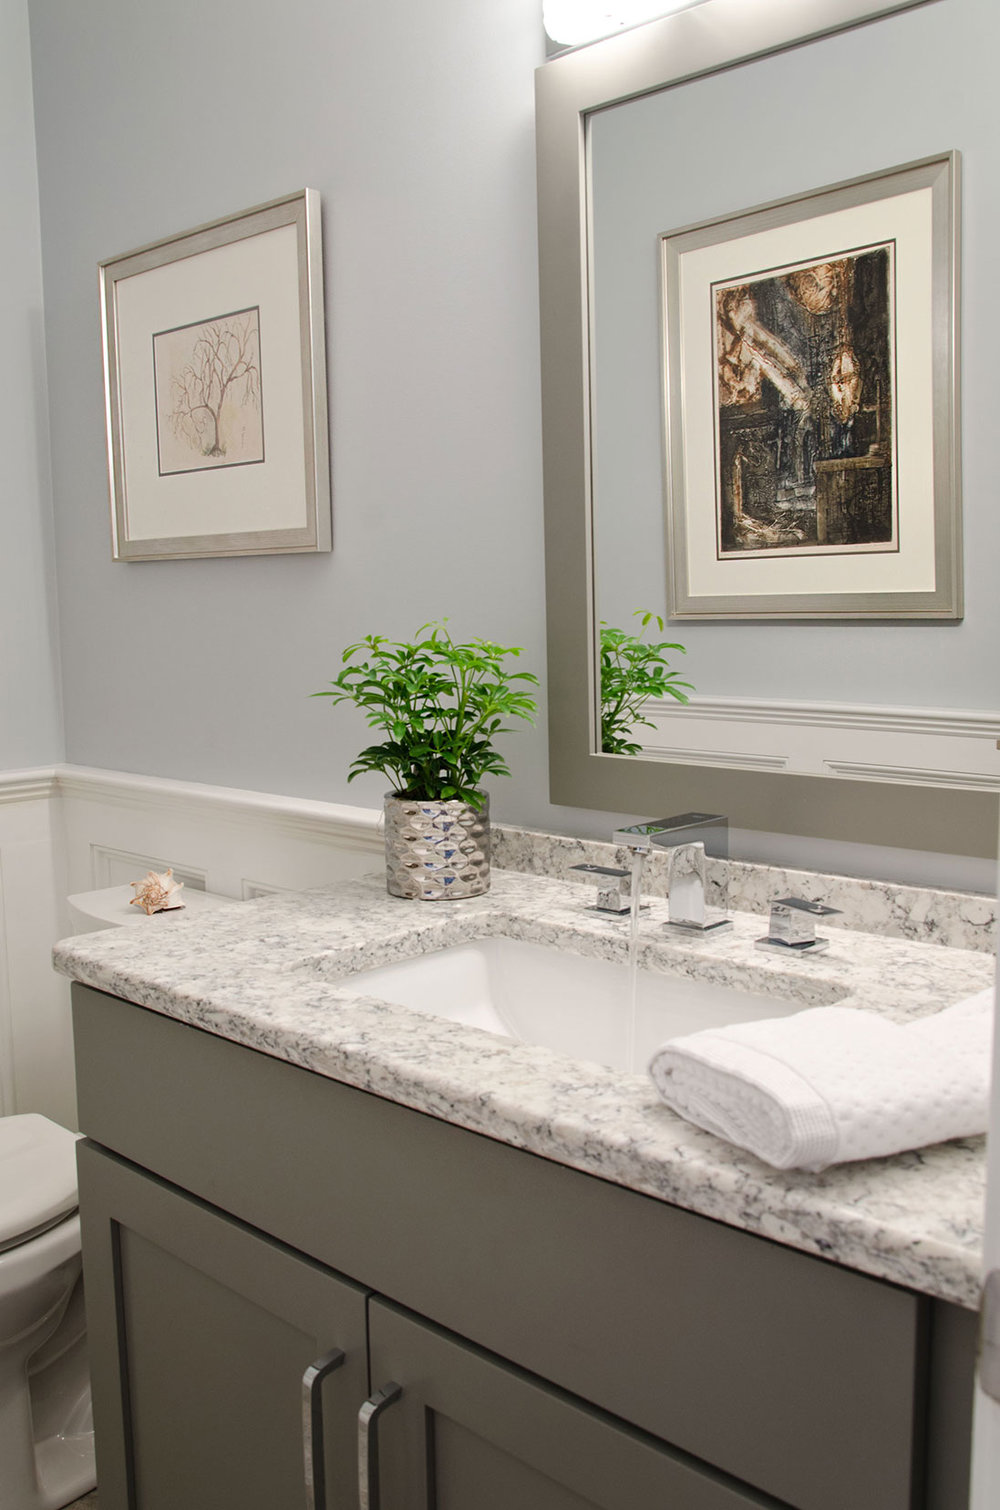 Quincy, MA Powder room interior design